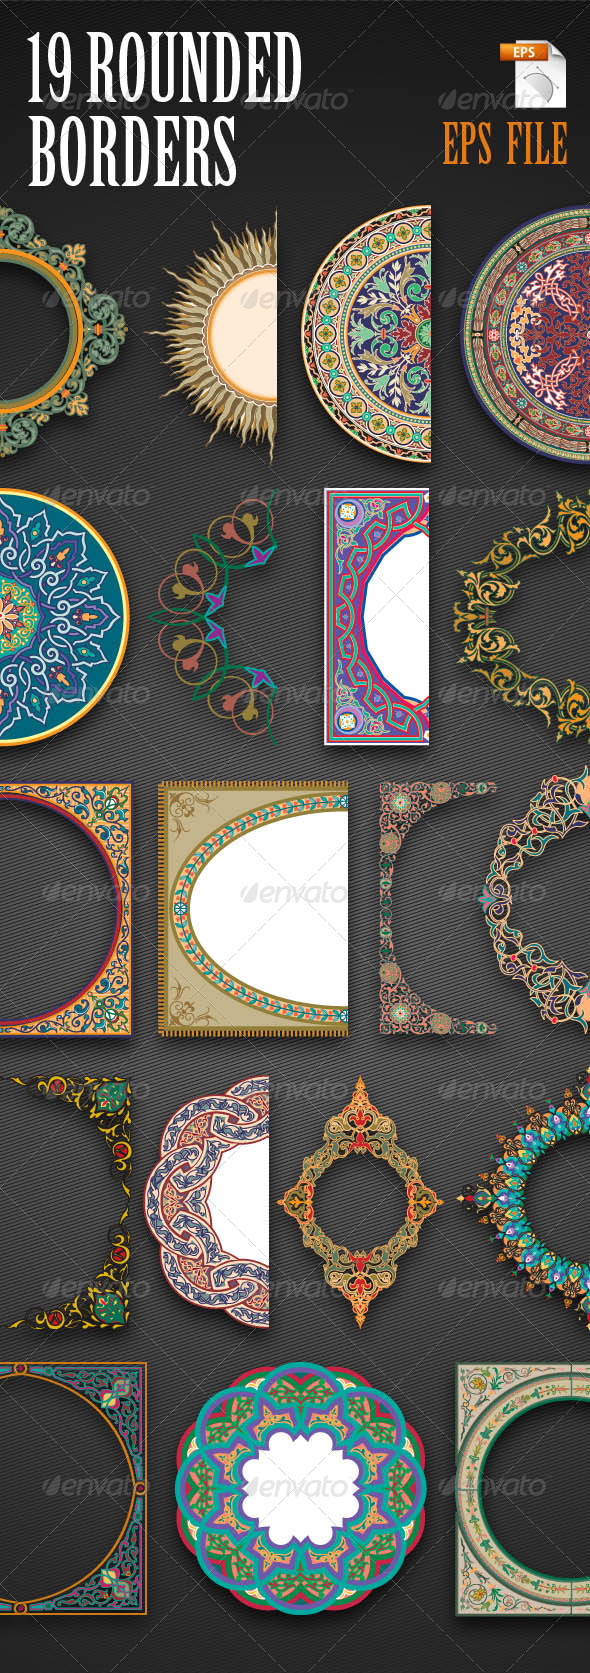 19 Rounded Borders - Borders Decorative